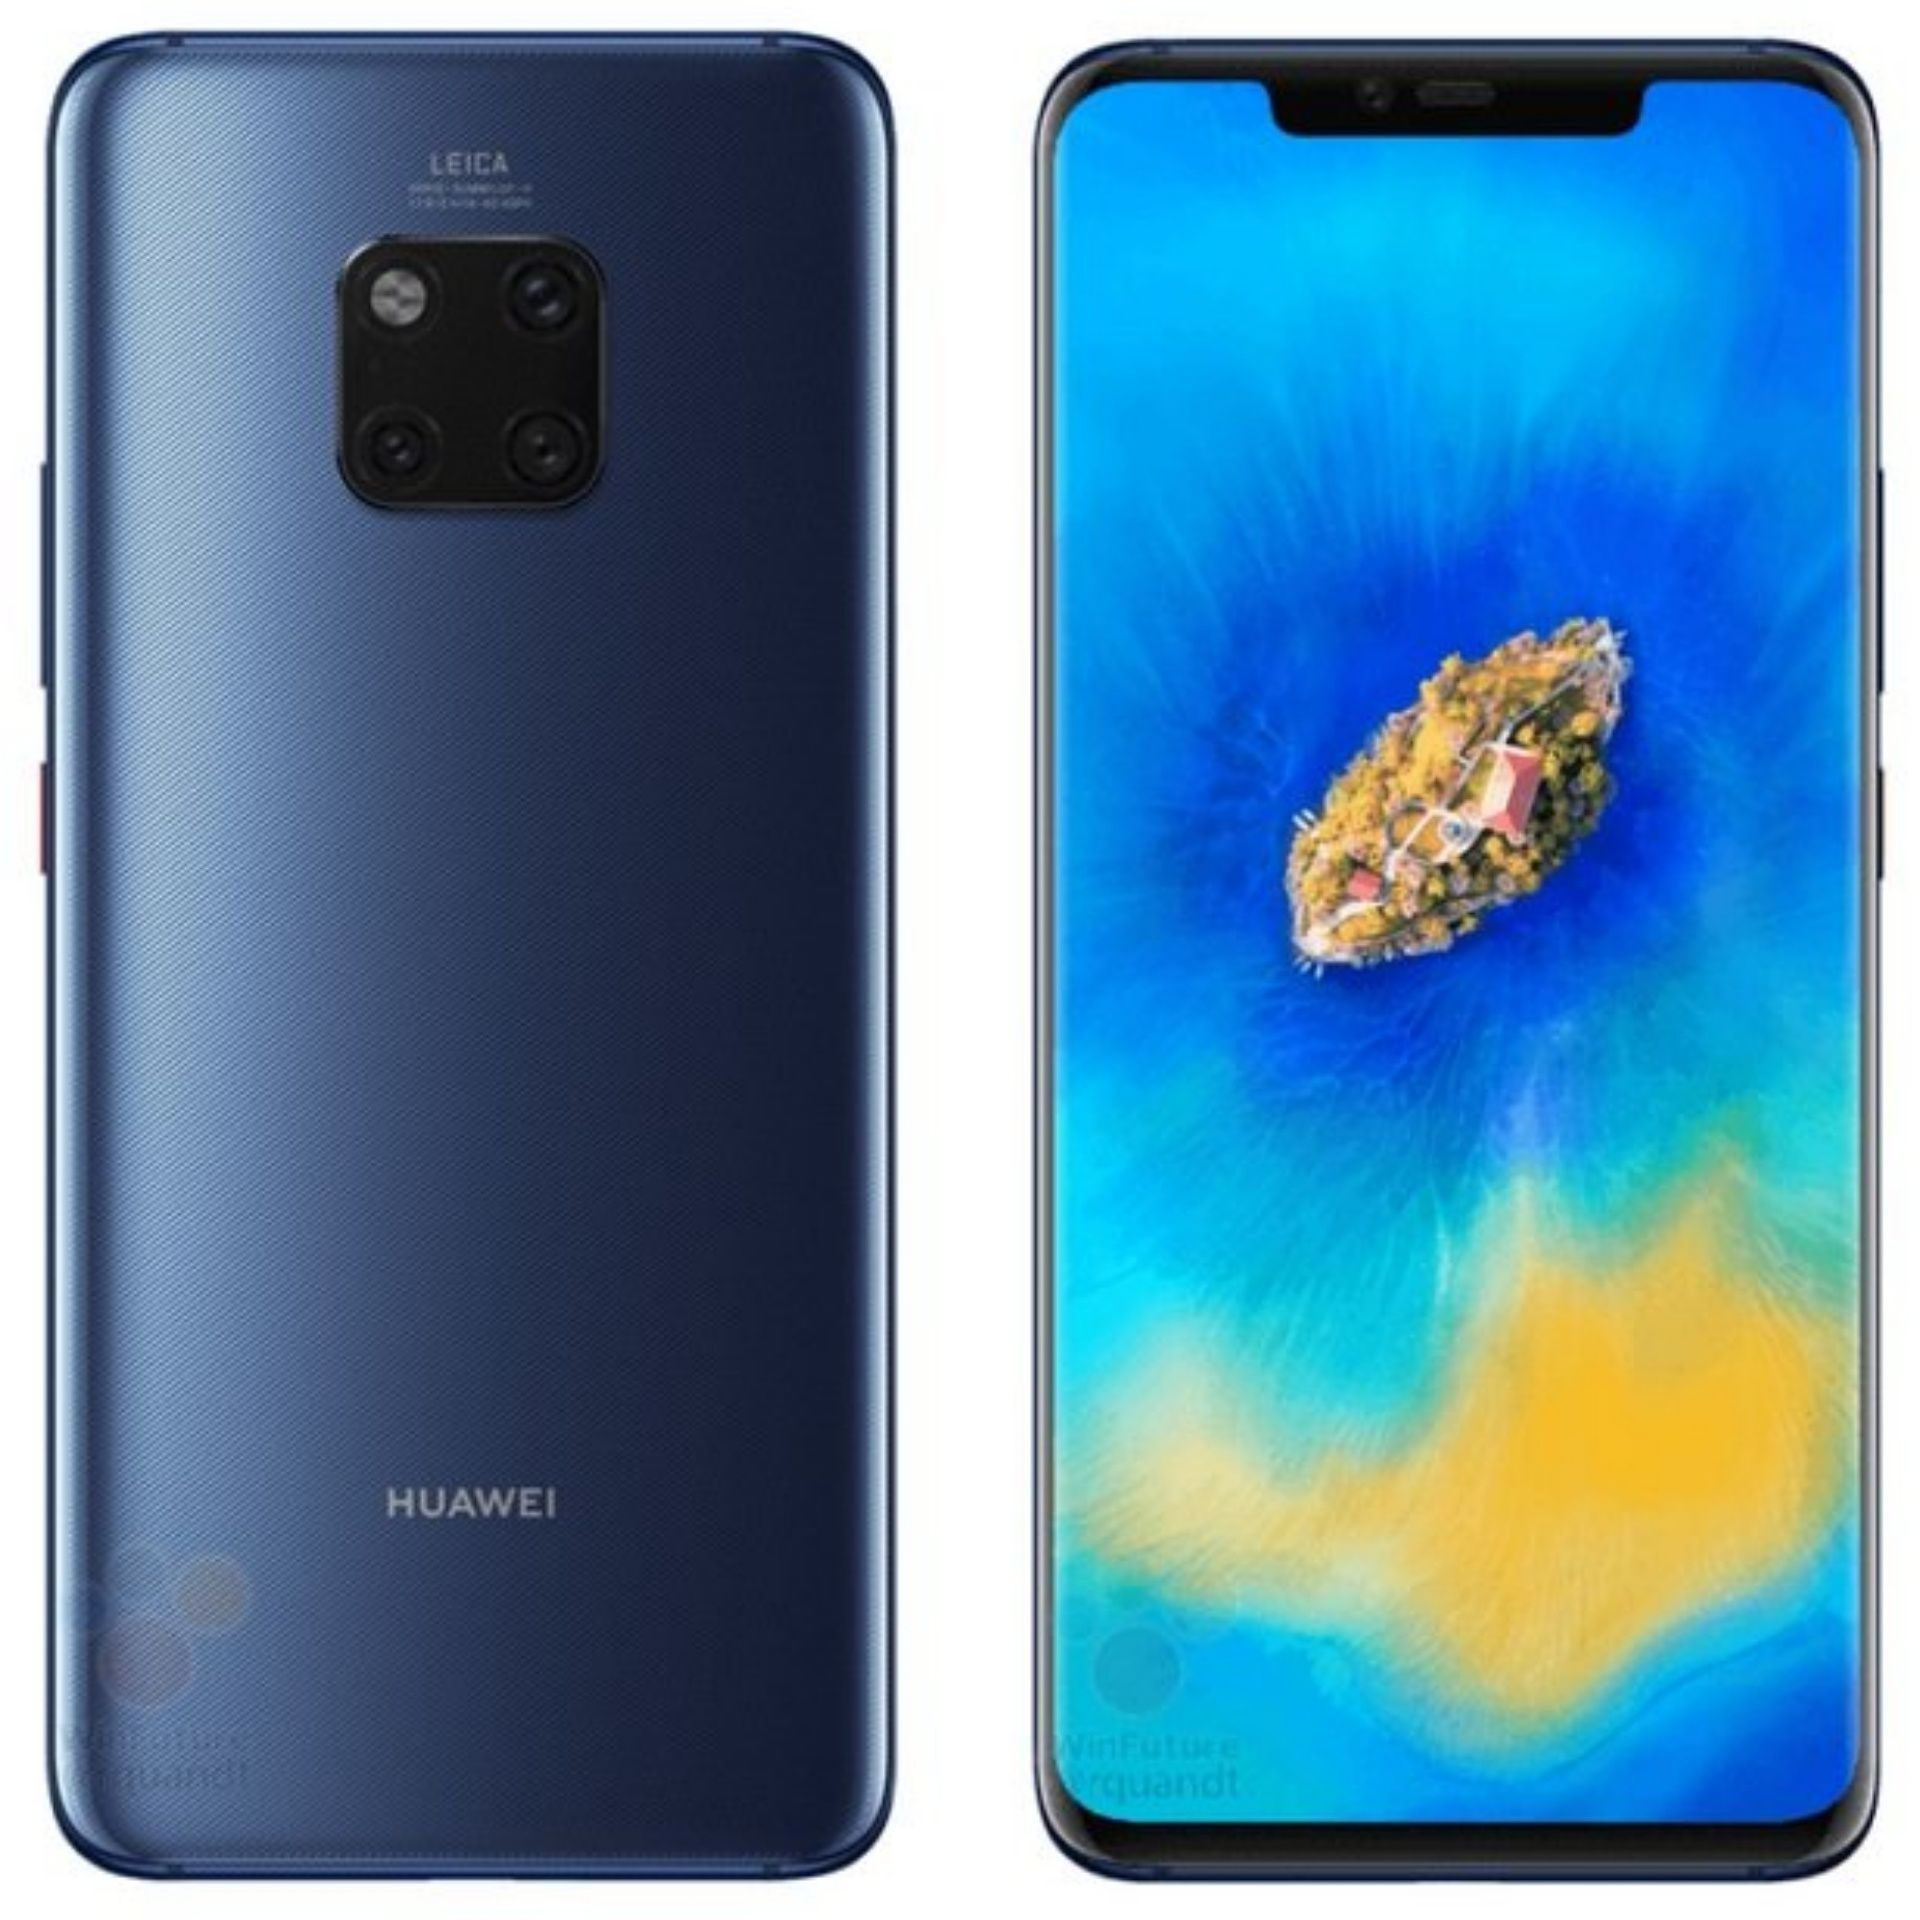 Huawei Mate 20 Pro Has Been Teased In New Promo Photos By Huawei The Mate 20 Pro Is The Successor To The Mate 10 Pro And Huawei Mate Huawei Huawei Wallpapers